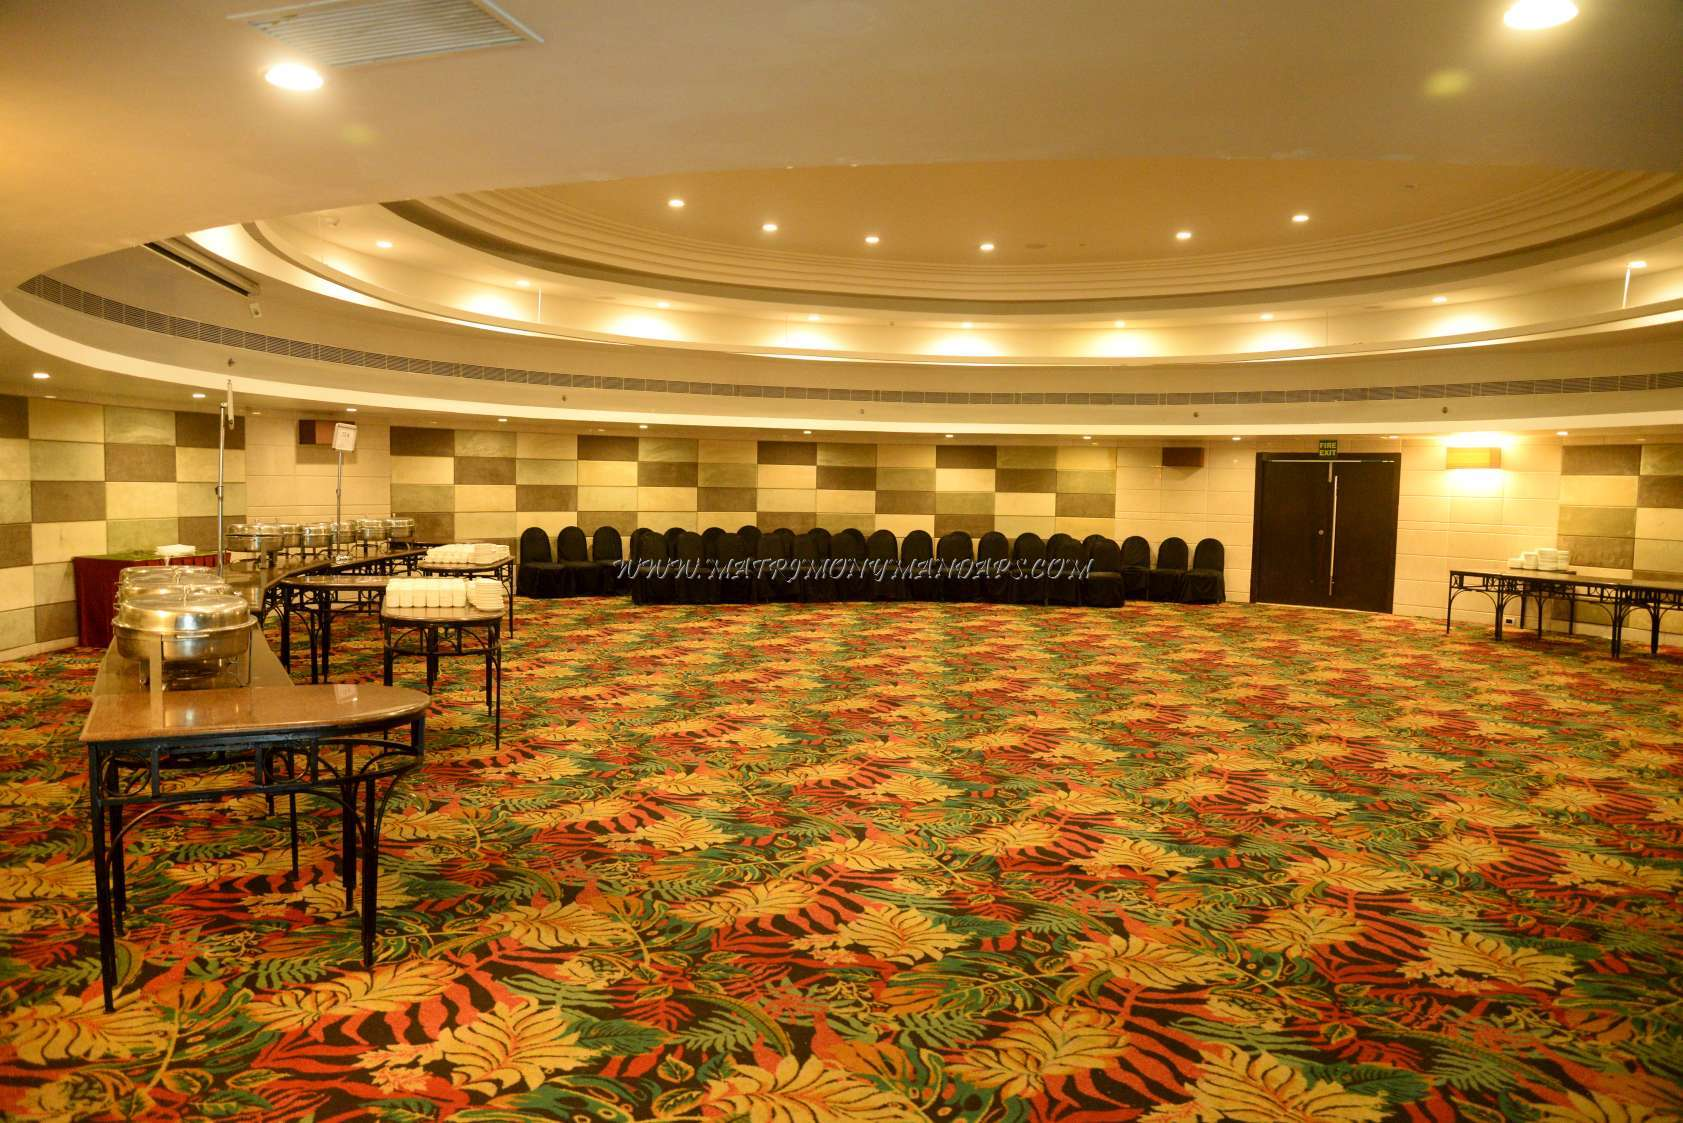 Find the availability of the Sandesh The Savera (A/C) in Mylapore, Chennai and avail special offers